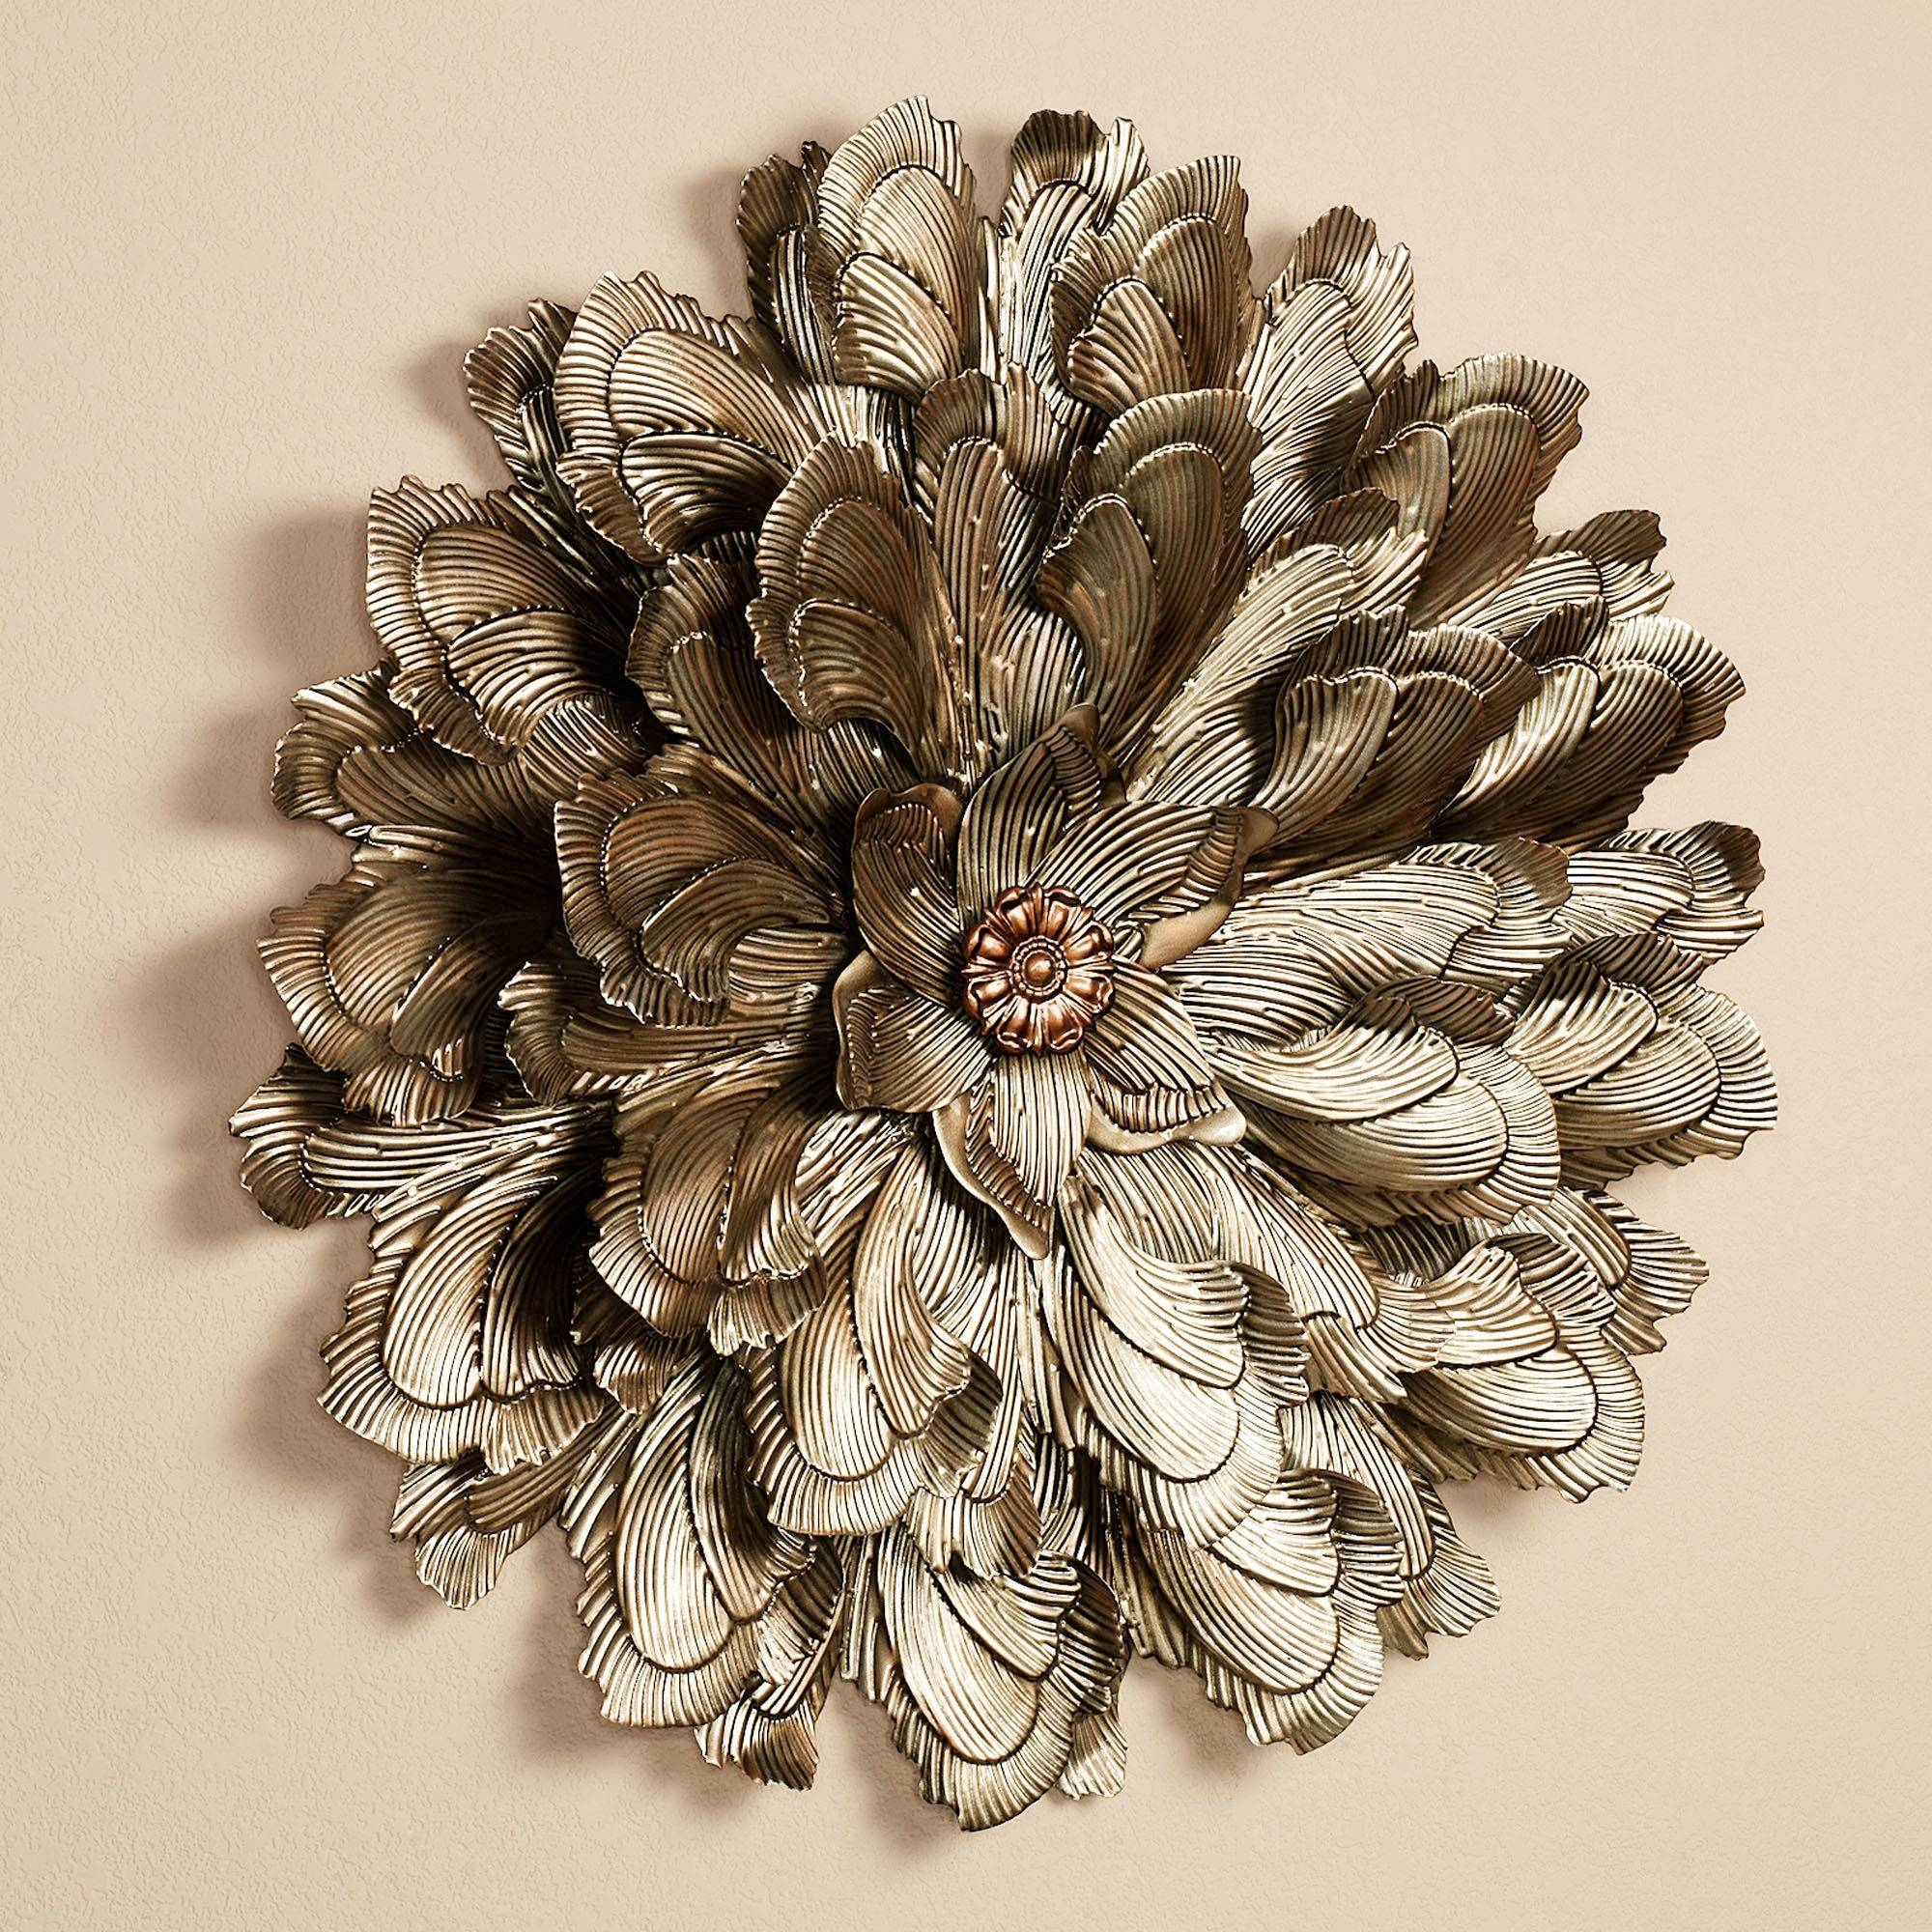 Delicate Flower Blossom Metal Wall Sculpture Throughout Most Current Gold Metal Wall Art (View 4 of 20)